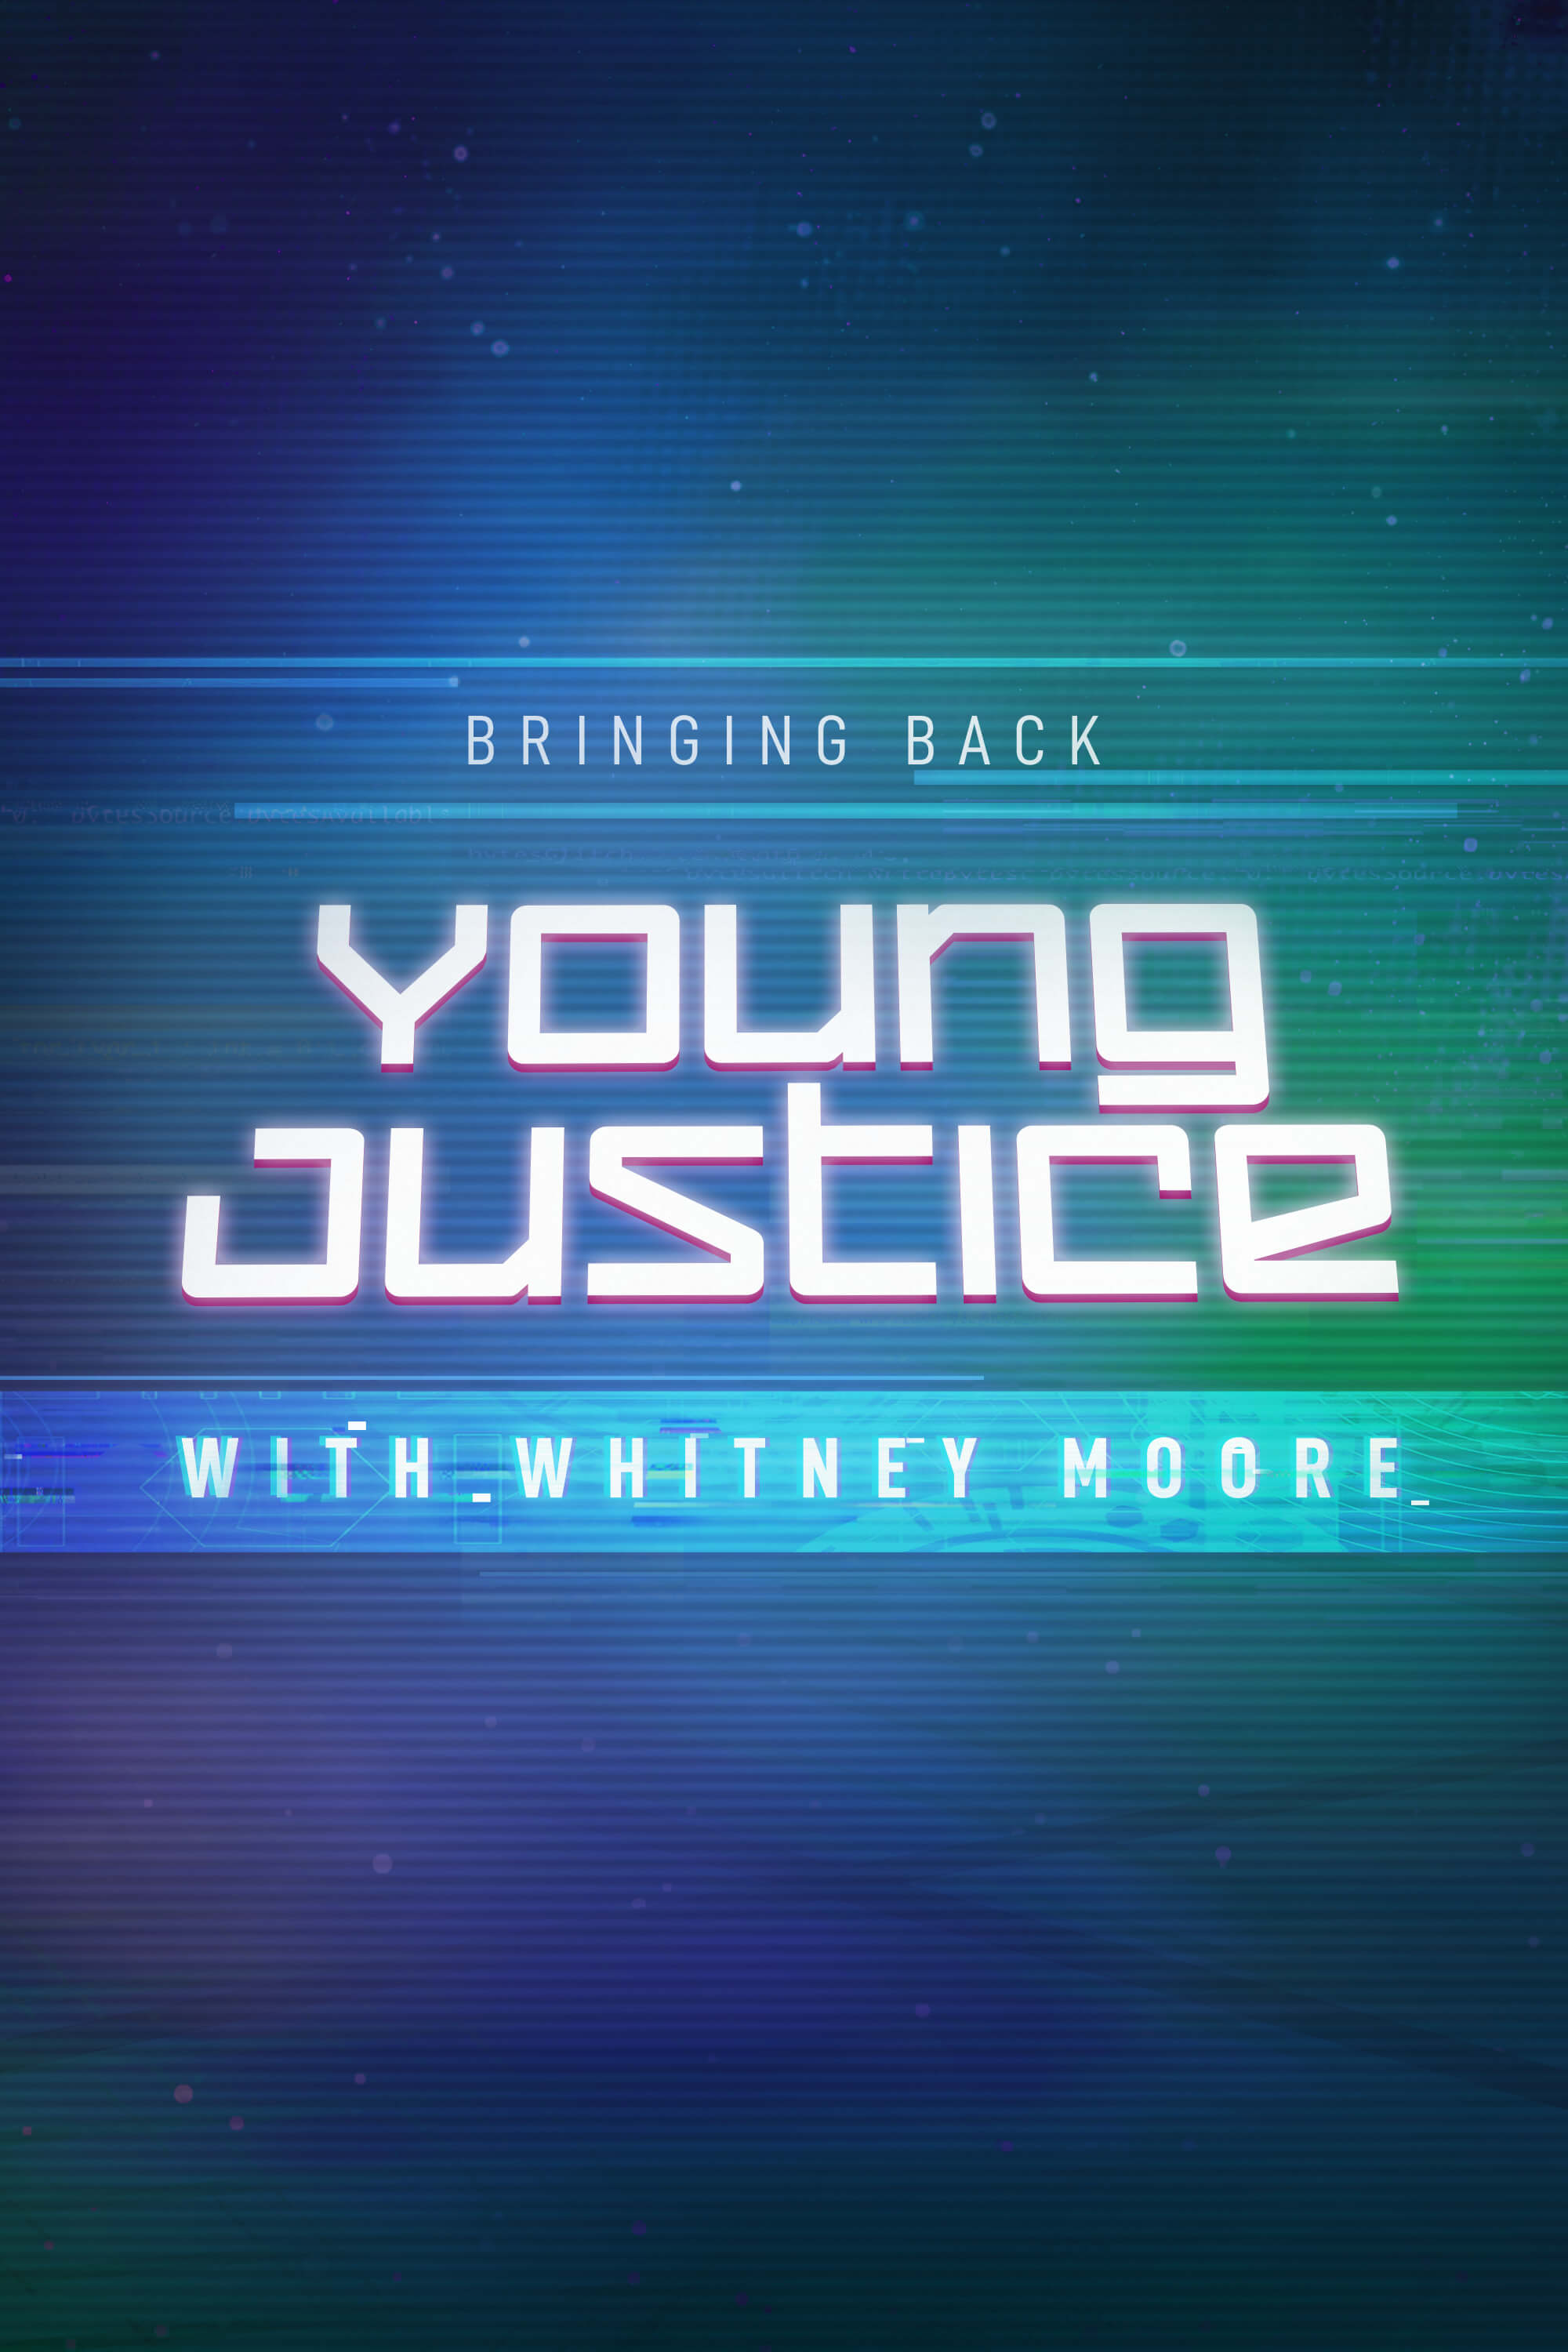 Bringing Back Young Justice With Whitney Moore